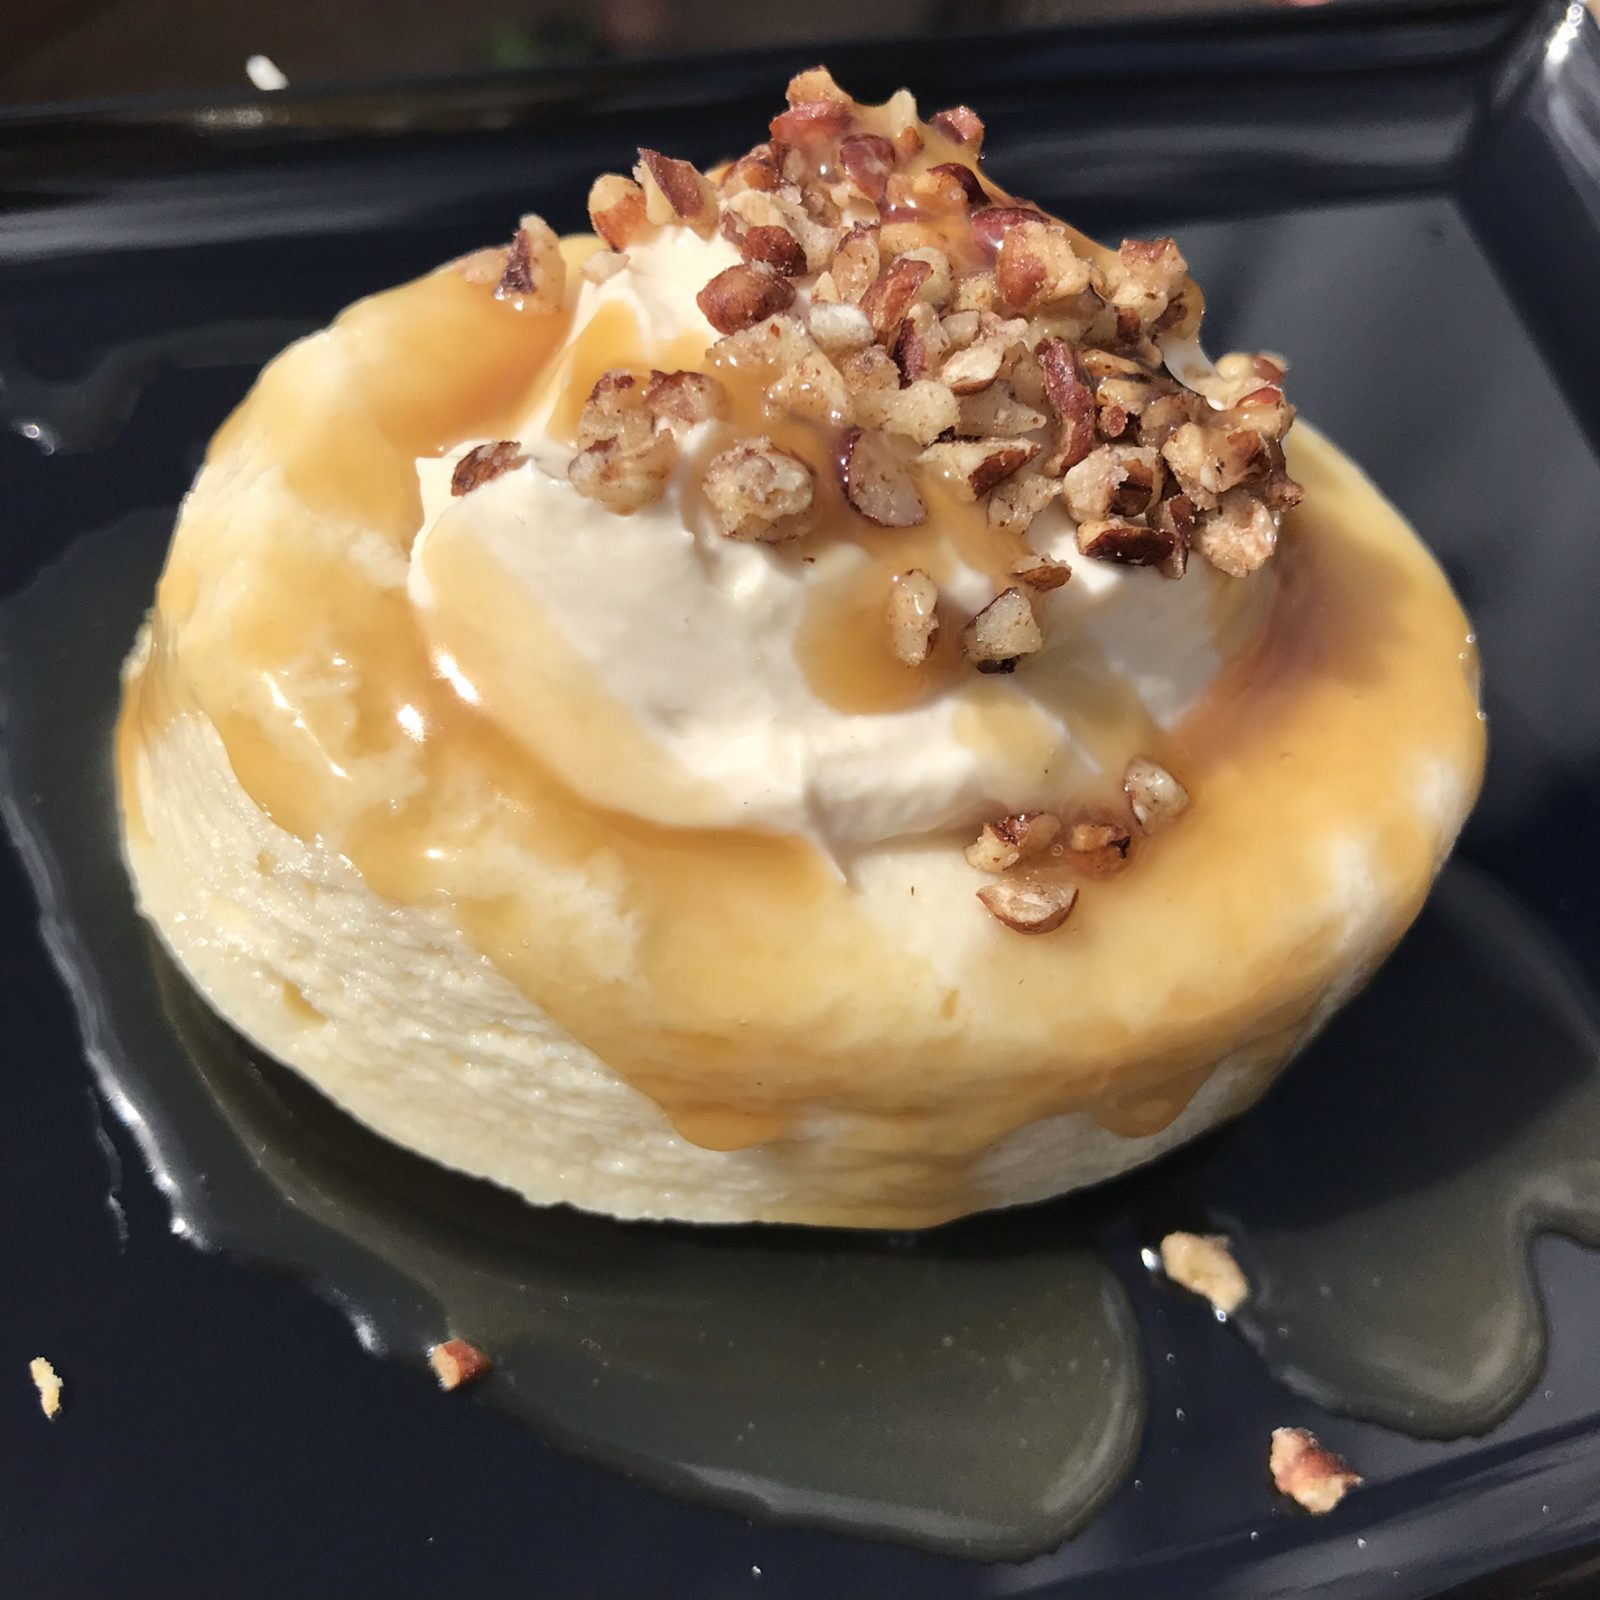 Maple Bourbon Boursin Cheesecake with Caramel and Pecan Crunch from epcot food and wine festival